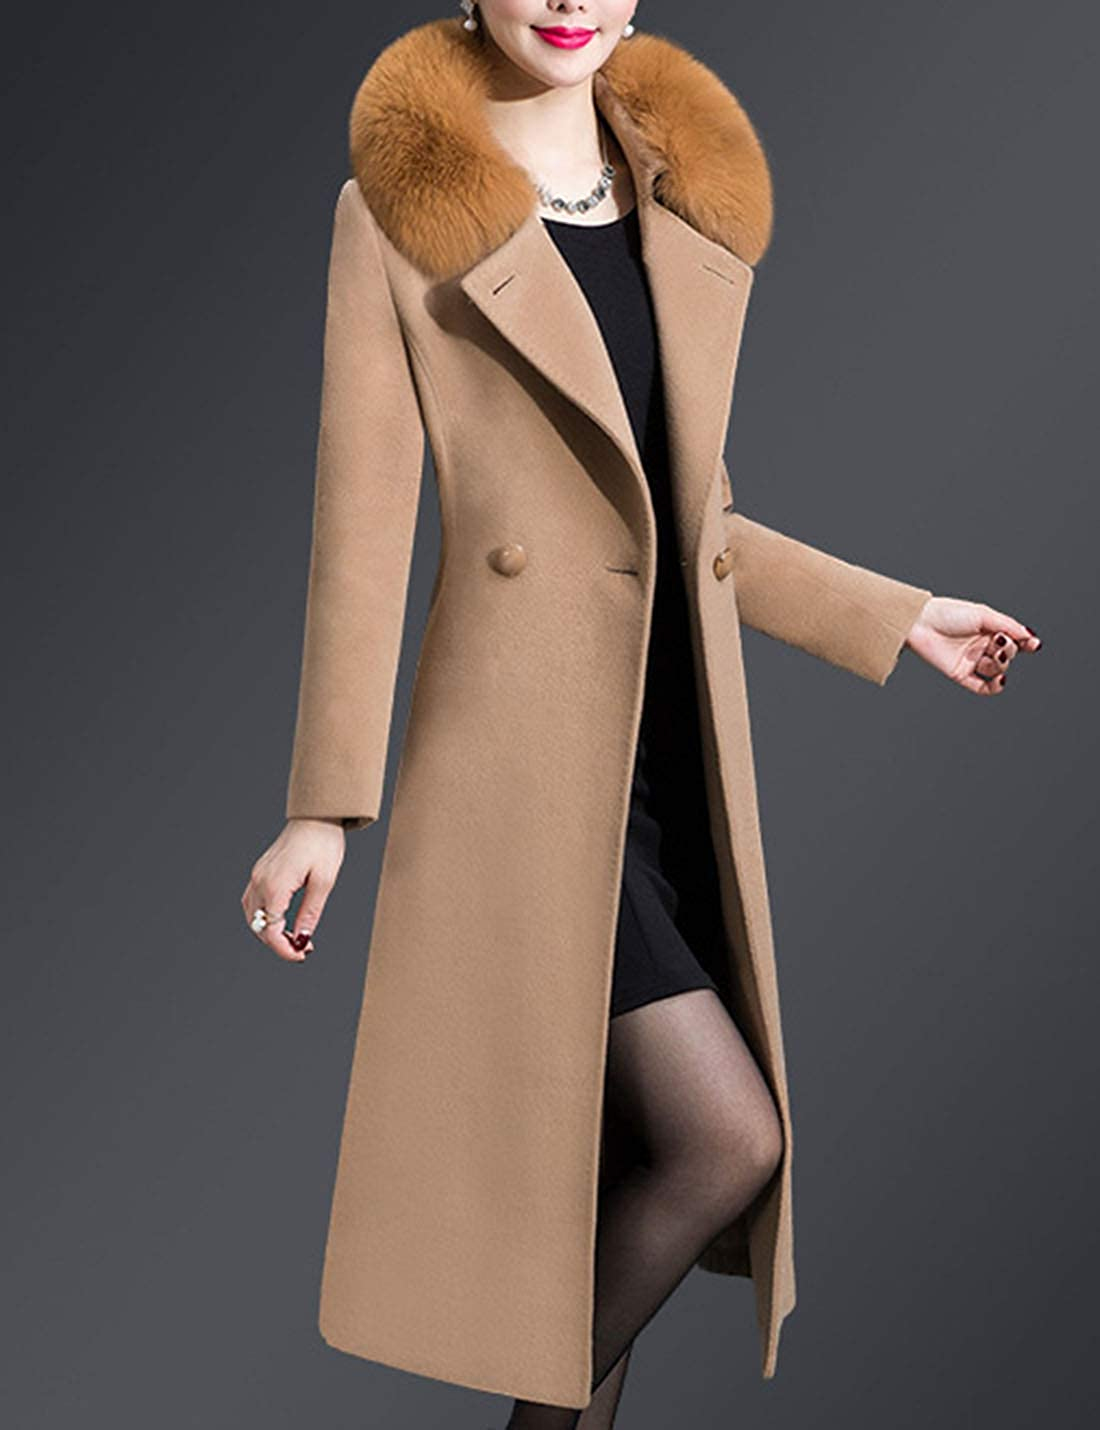 Uaneo Women's Casual Slim Faux Fur Collar Double Breasted Long Wool Pea Coats(Camel-XS)